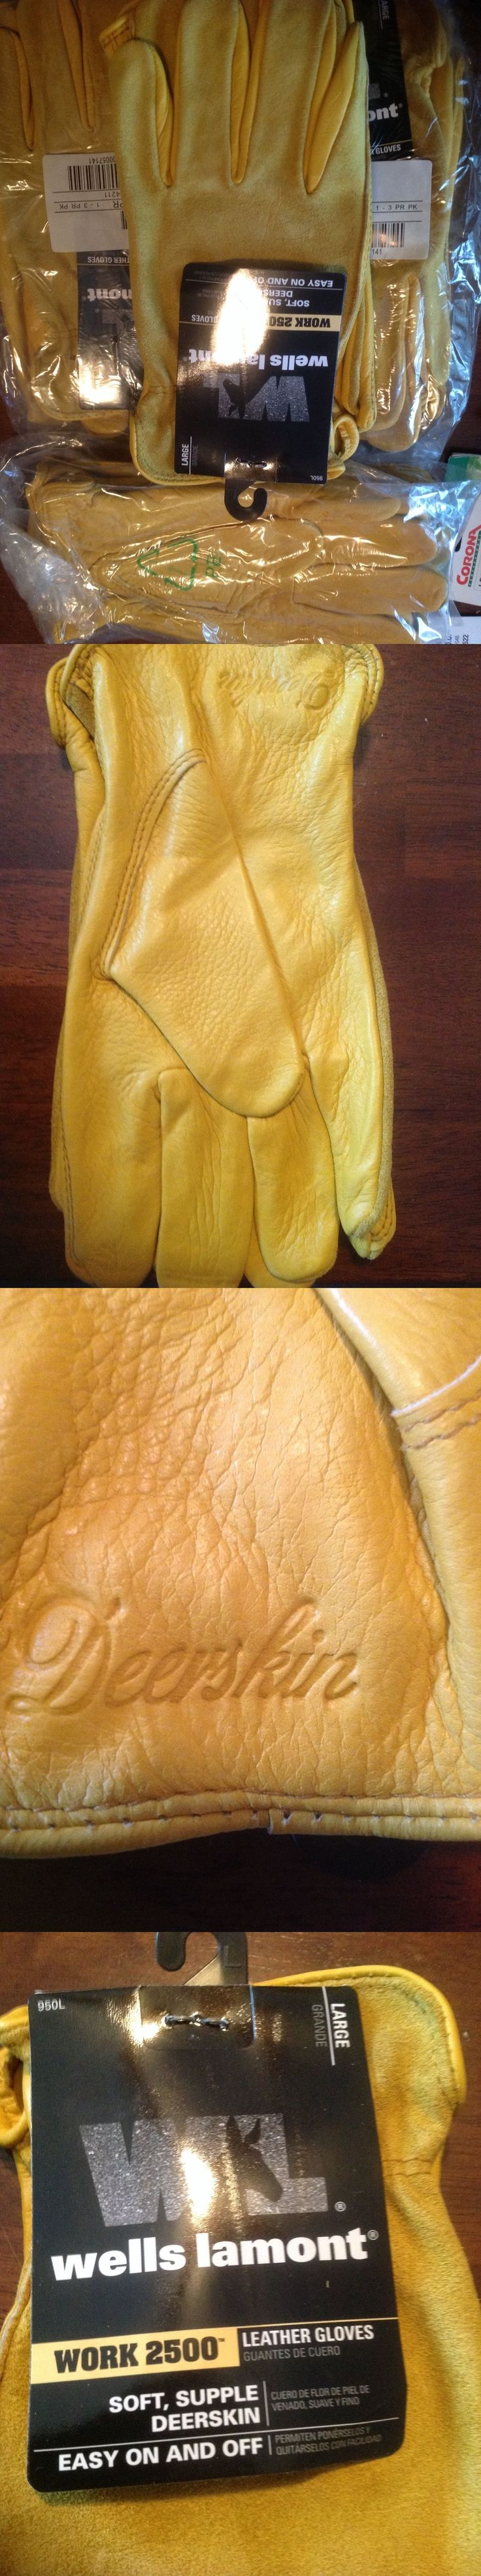 Gloves and Mittens 2994: One Dozen Leather Deerskin Gloves Wells Lamont Size Large -> BUY IT NOW ONLY: $85 on eBay!